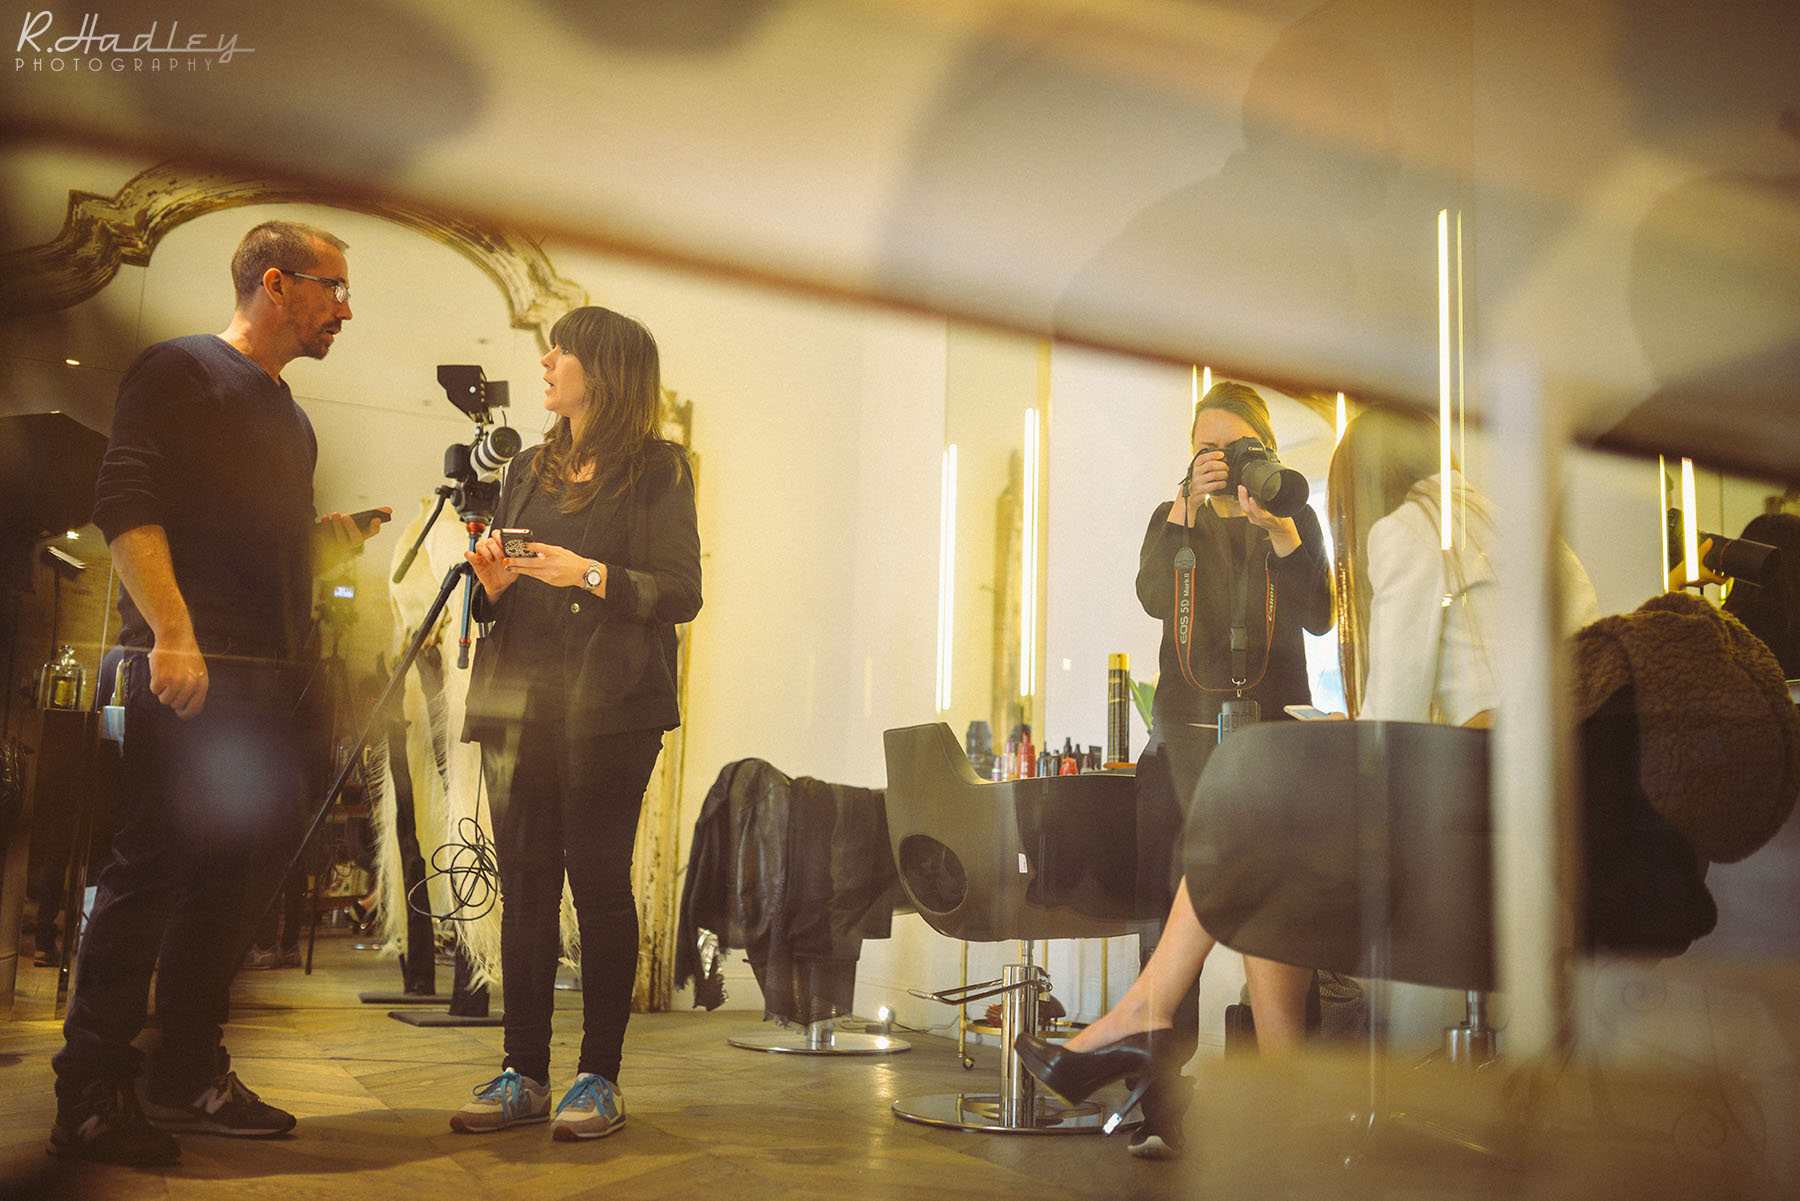 On Set Photographer for Carolina De Santis film production at Salon Toro, Barcelona